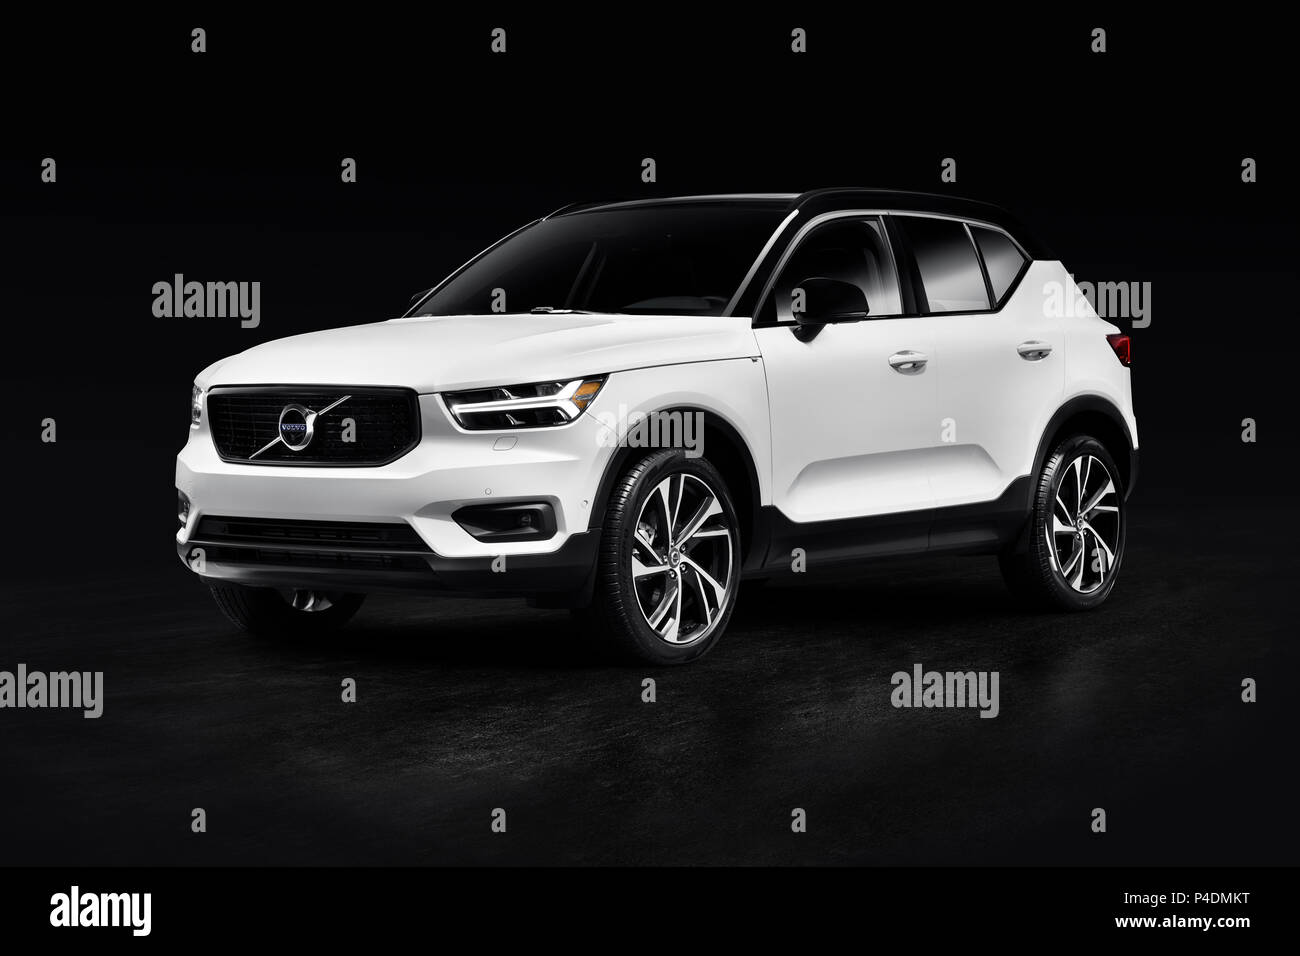 White 2019 Volvo Xc40 T5 Awd R Design Luxury Car Suv Isolated On